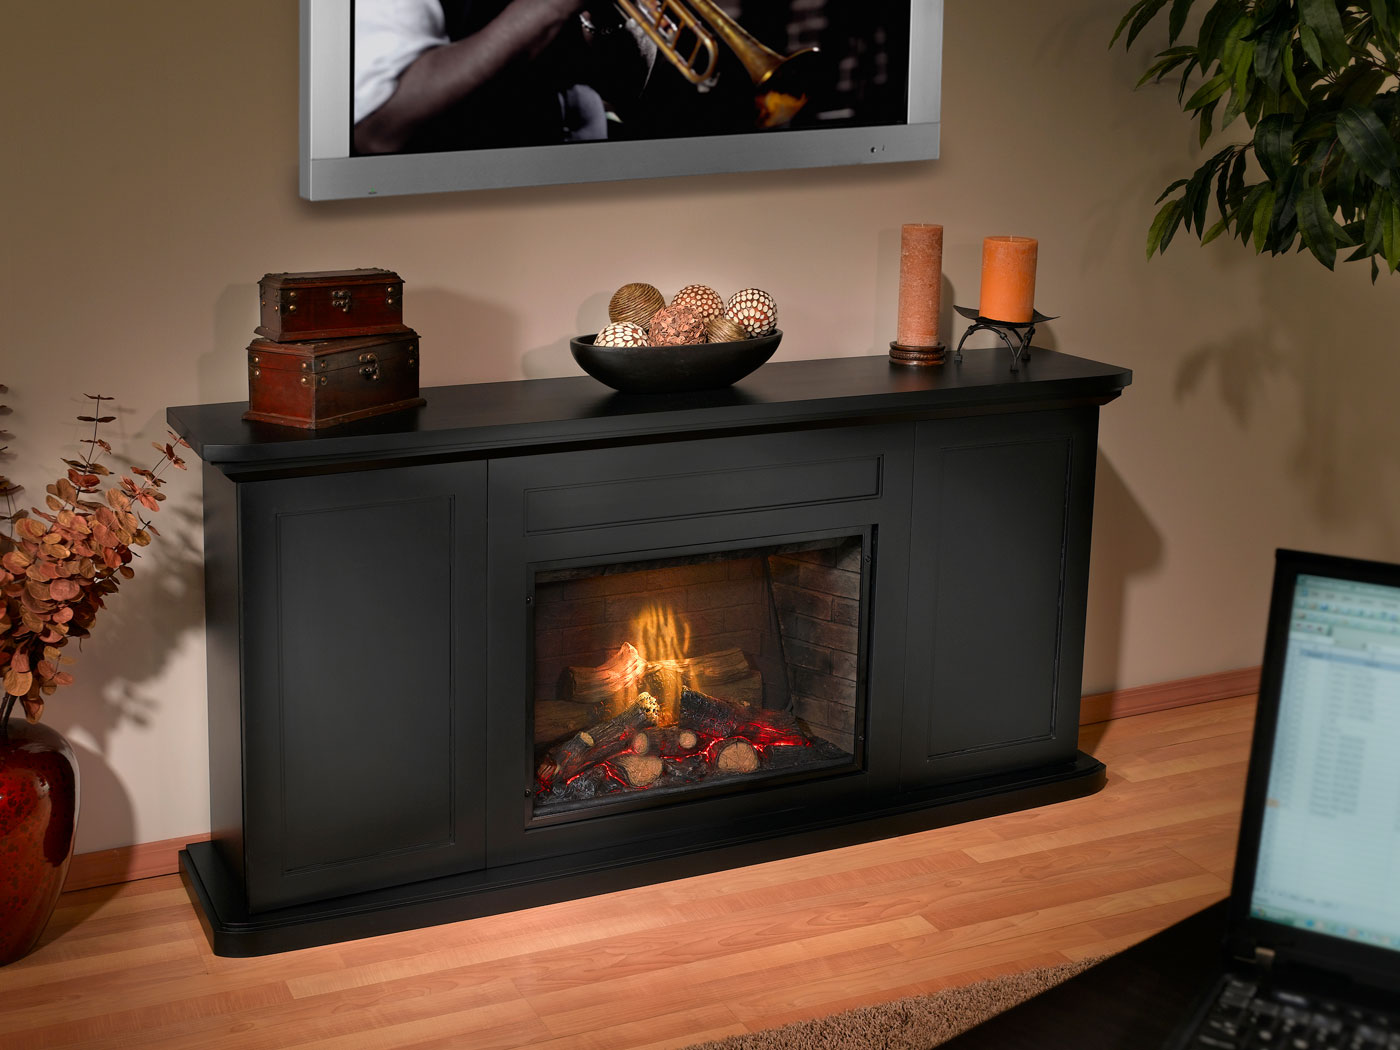 Pleasing Electric Fireplaces Inserts Business Networking Melbourne Download Free Architecture Designs Lectubocepmadebymaigaardcom